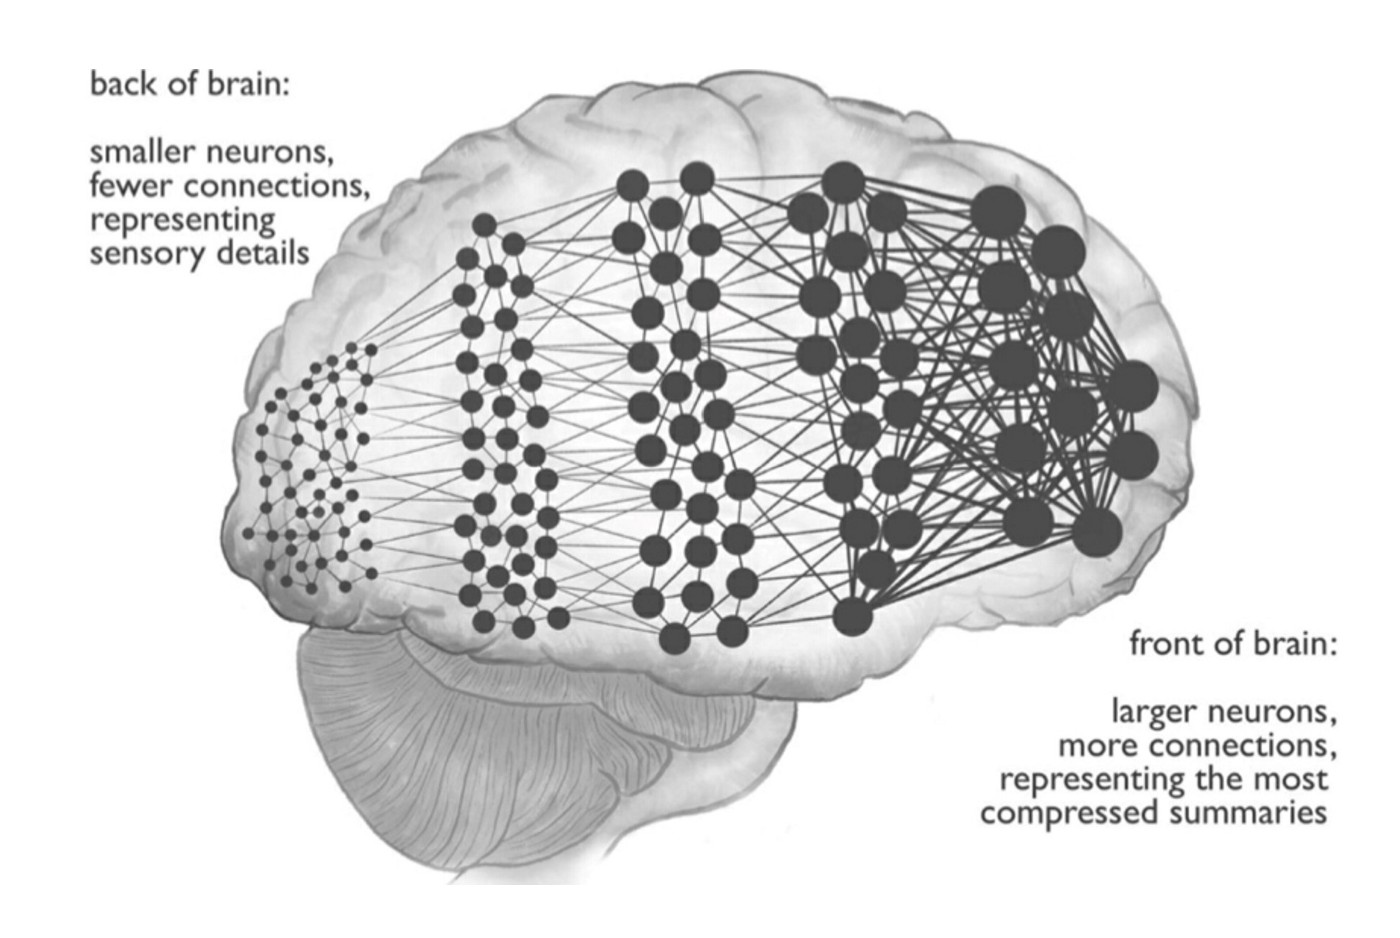 Brain diagram showing smaller neurons loosely connected in back of brain goinf forward to densely packed, highly connected neurons at the front